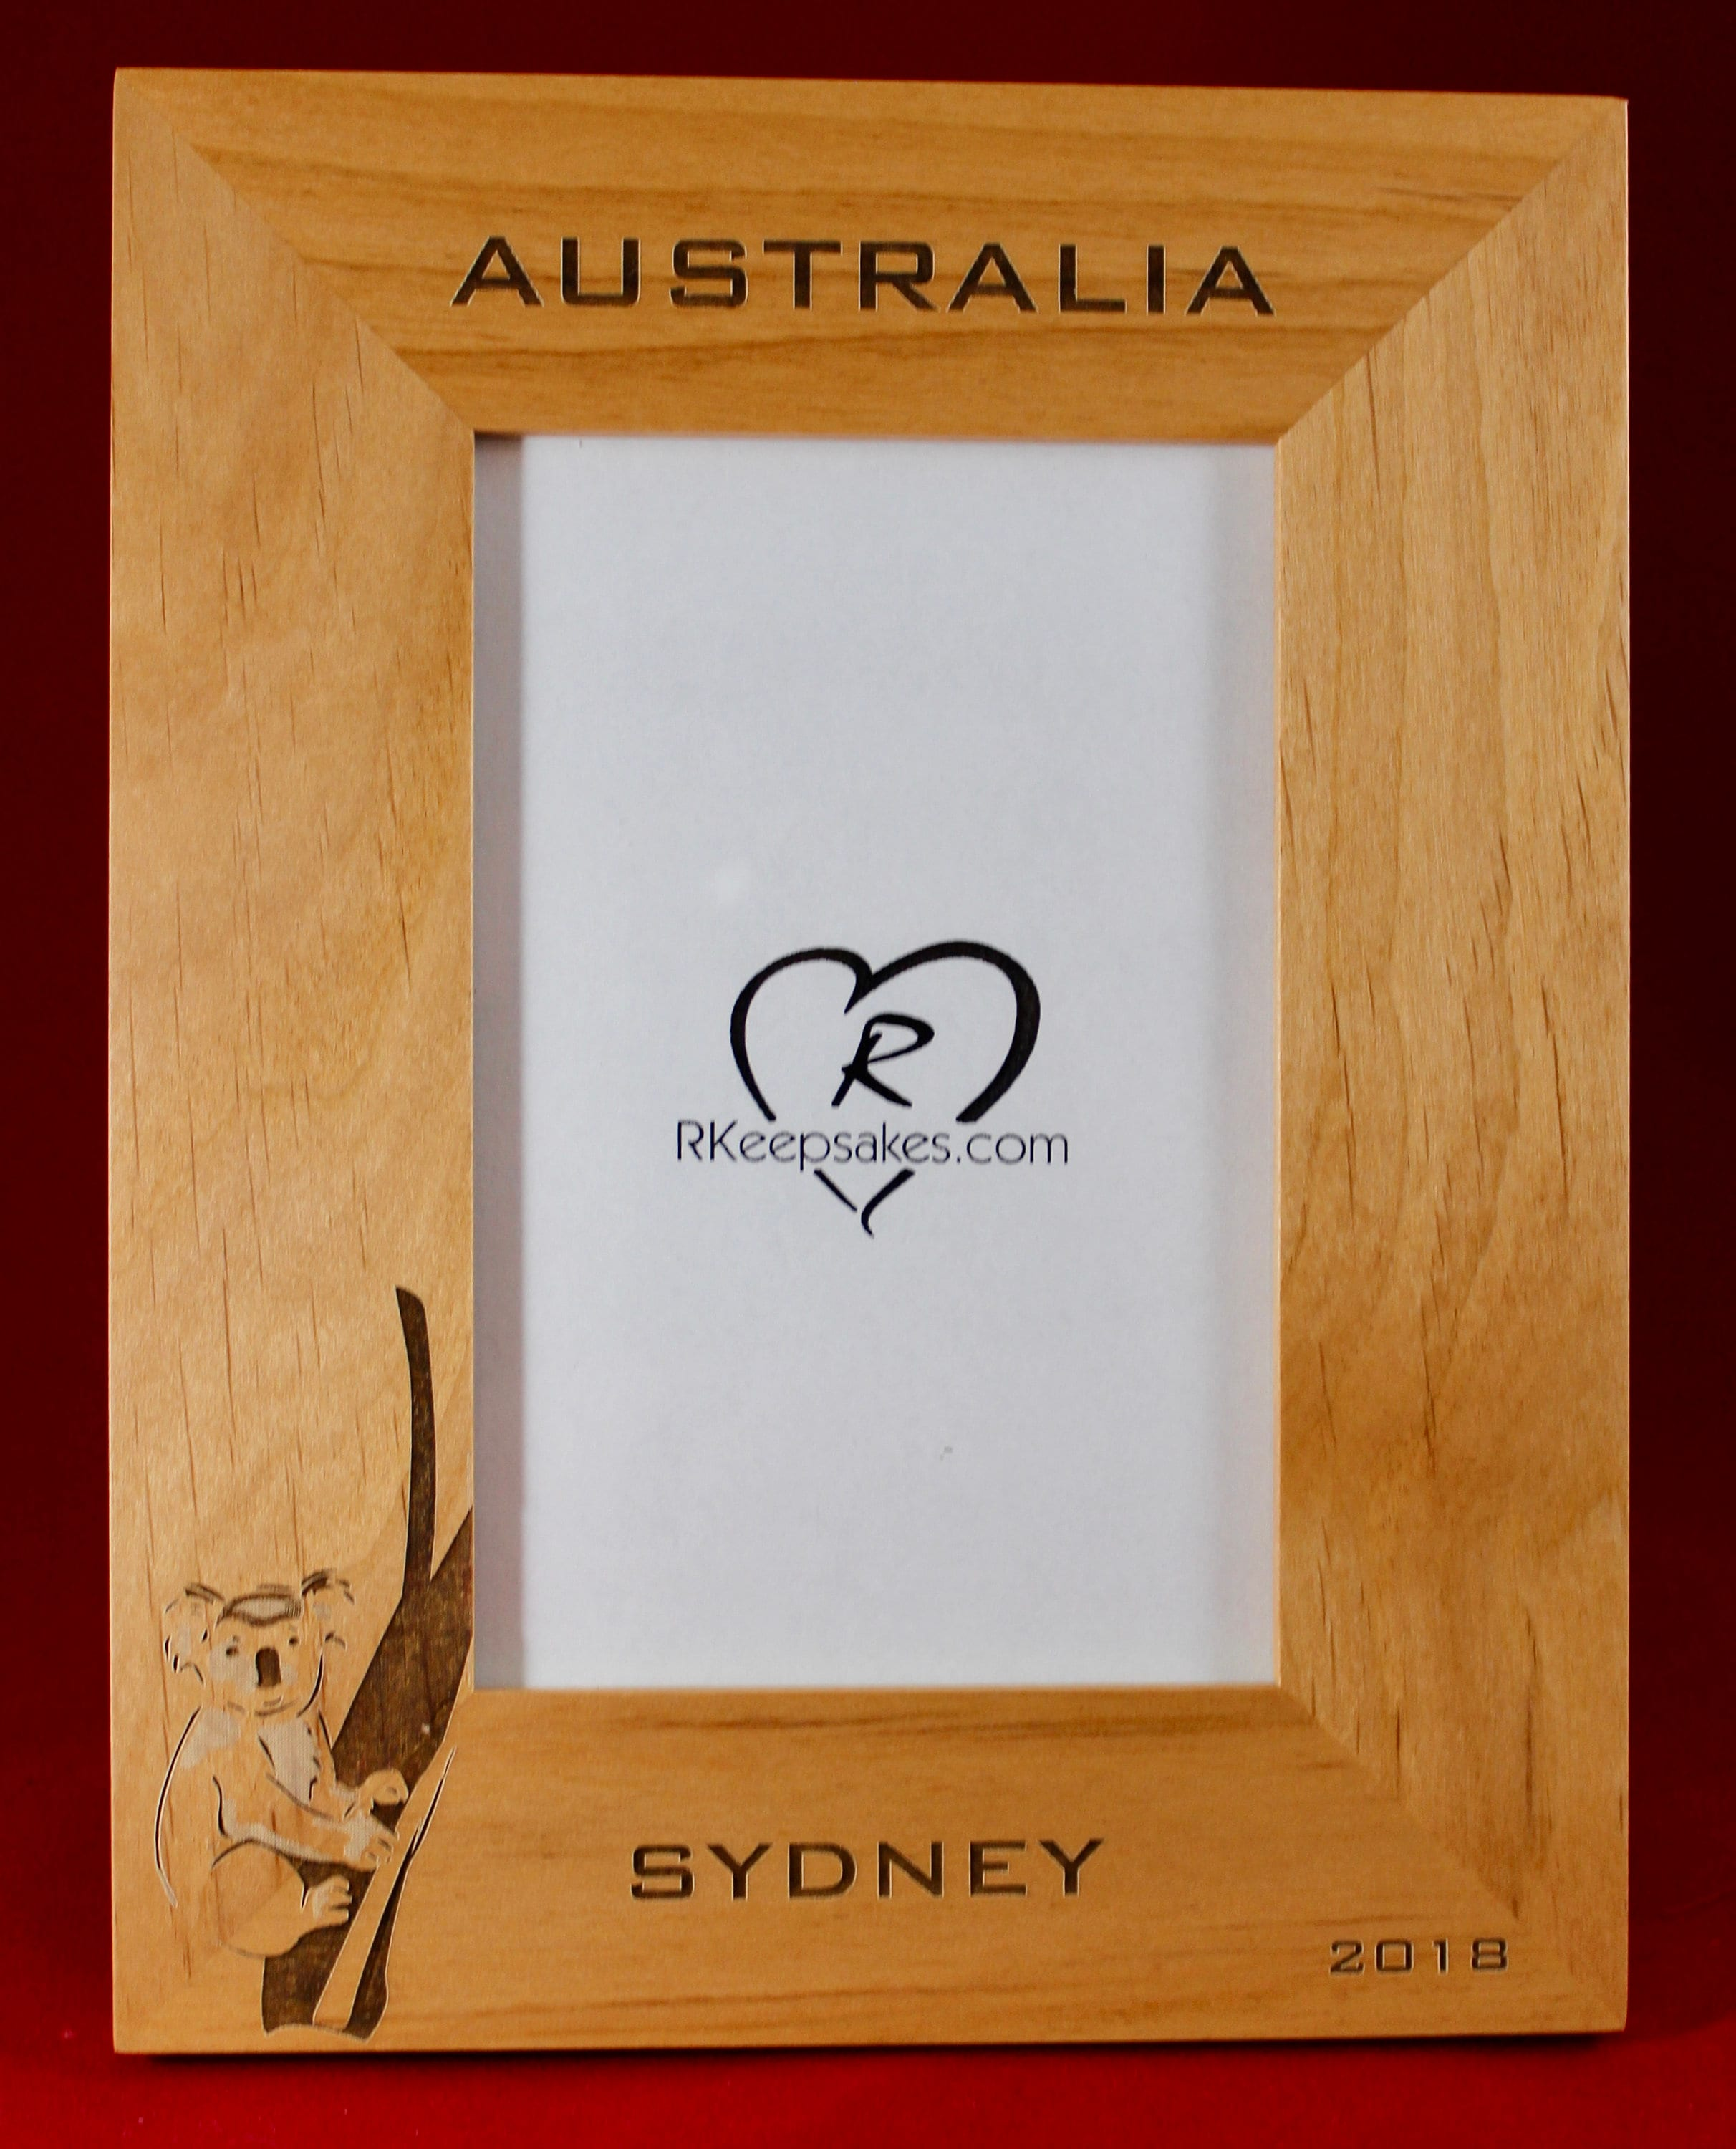 Picture Frames Australia Australia Koala Personalized Engraved Picture Frame Any Text Sydney Personalized Vacation Frame Making Memories Light Or Dark Wood